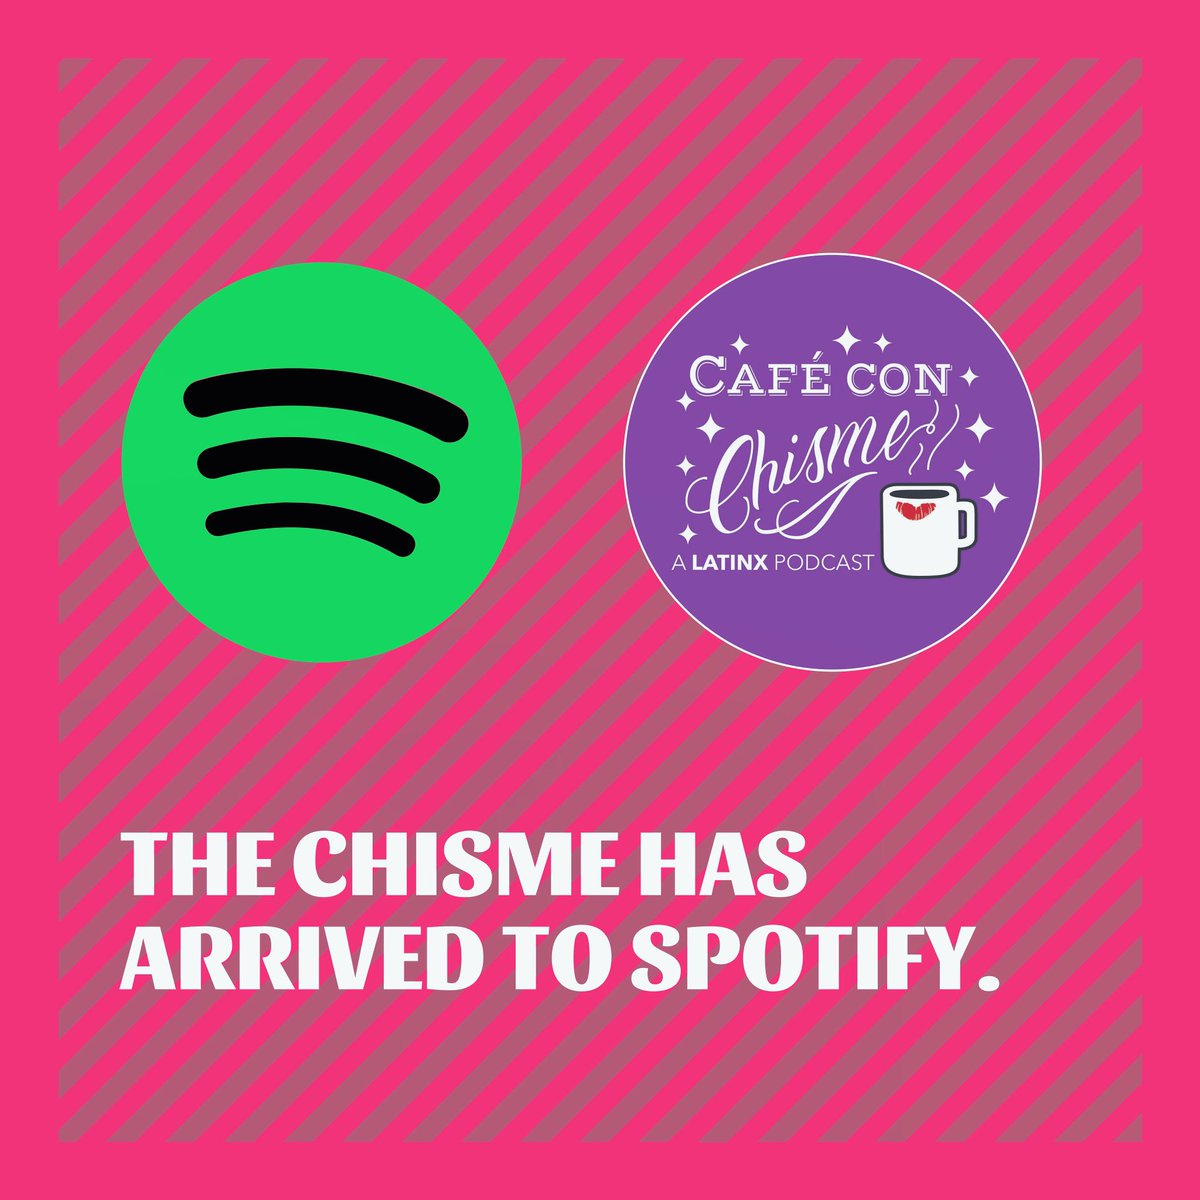 The chisme has arrived to Spotify 💜☕️✨